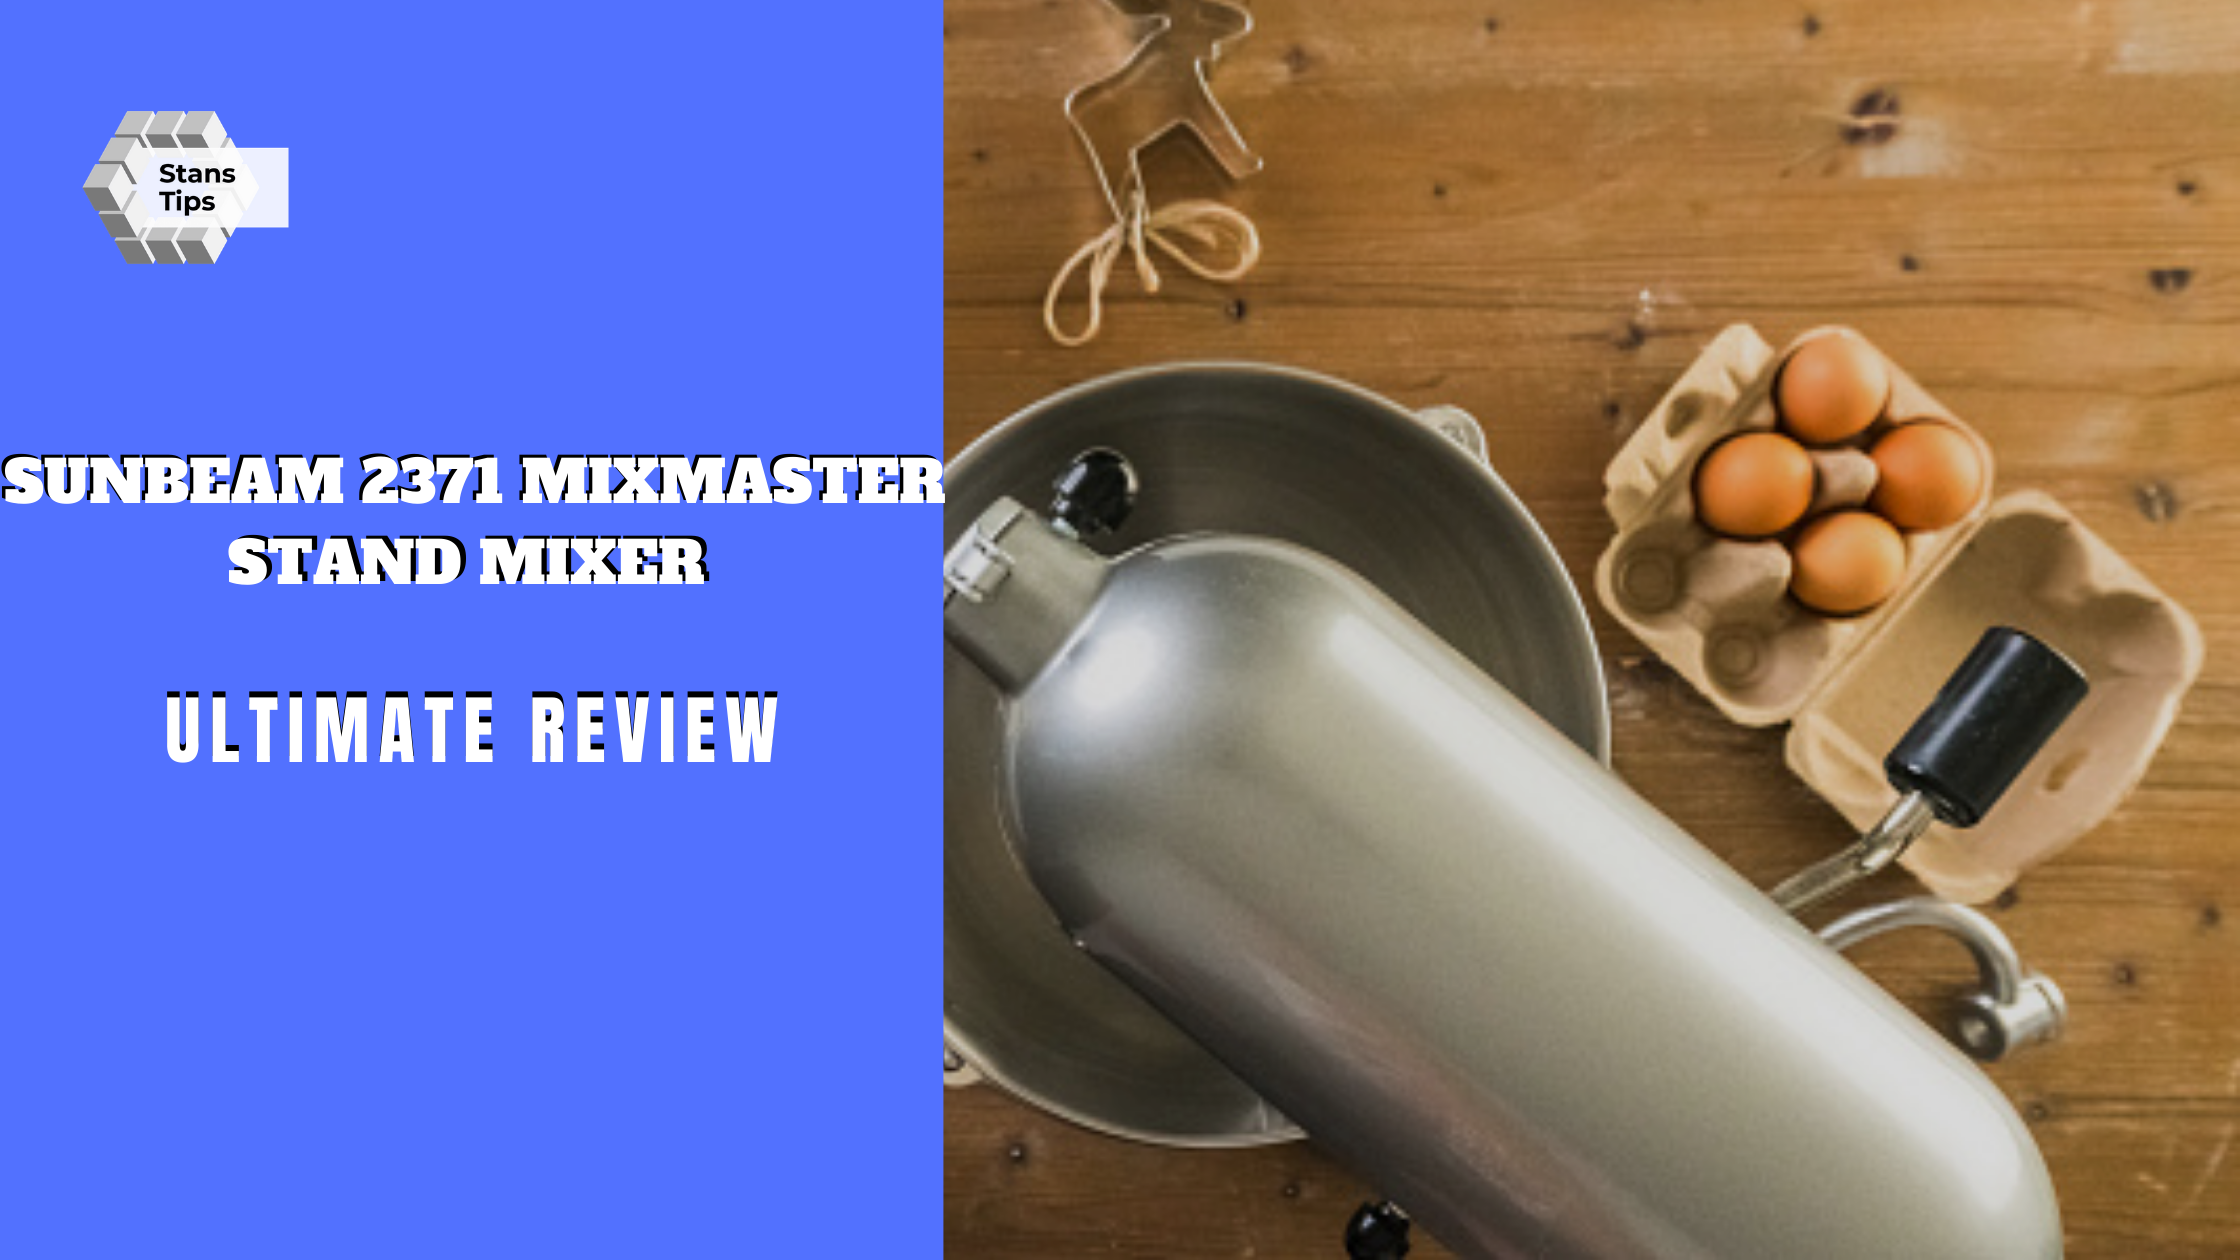 Sunbeam 2371 mixmaster stand mixer review